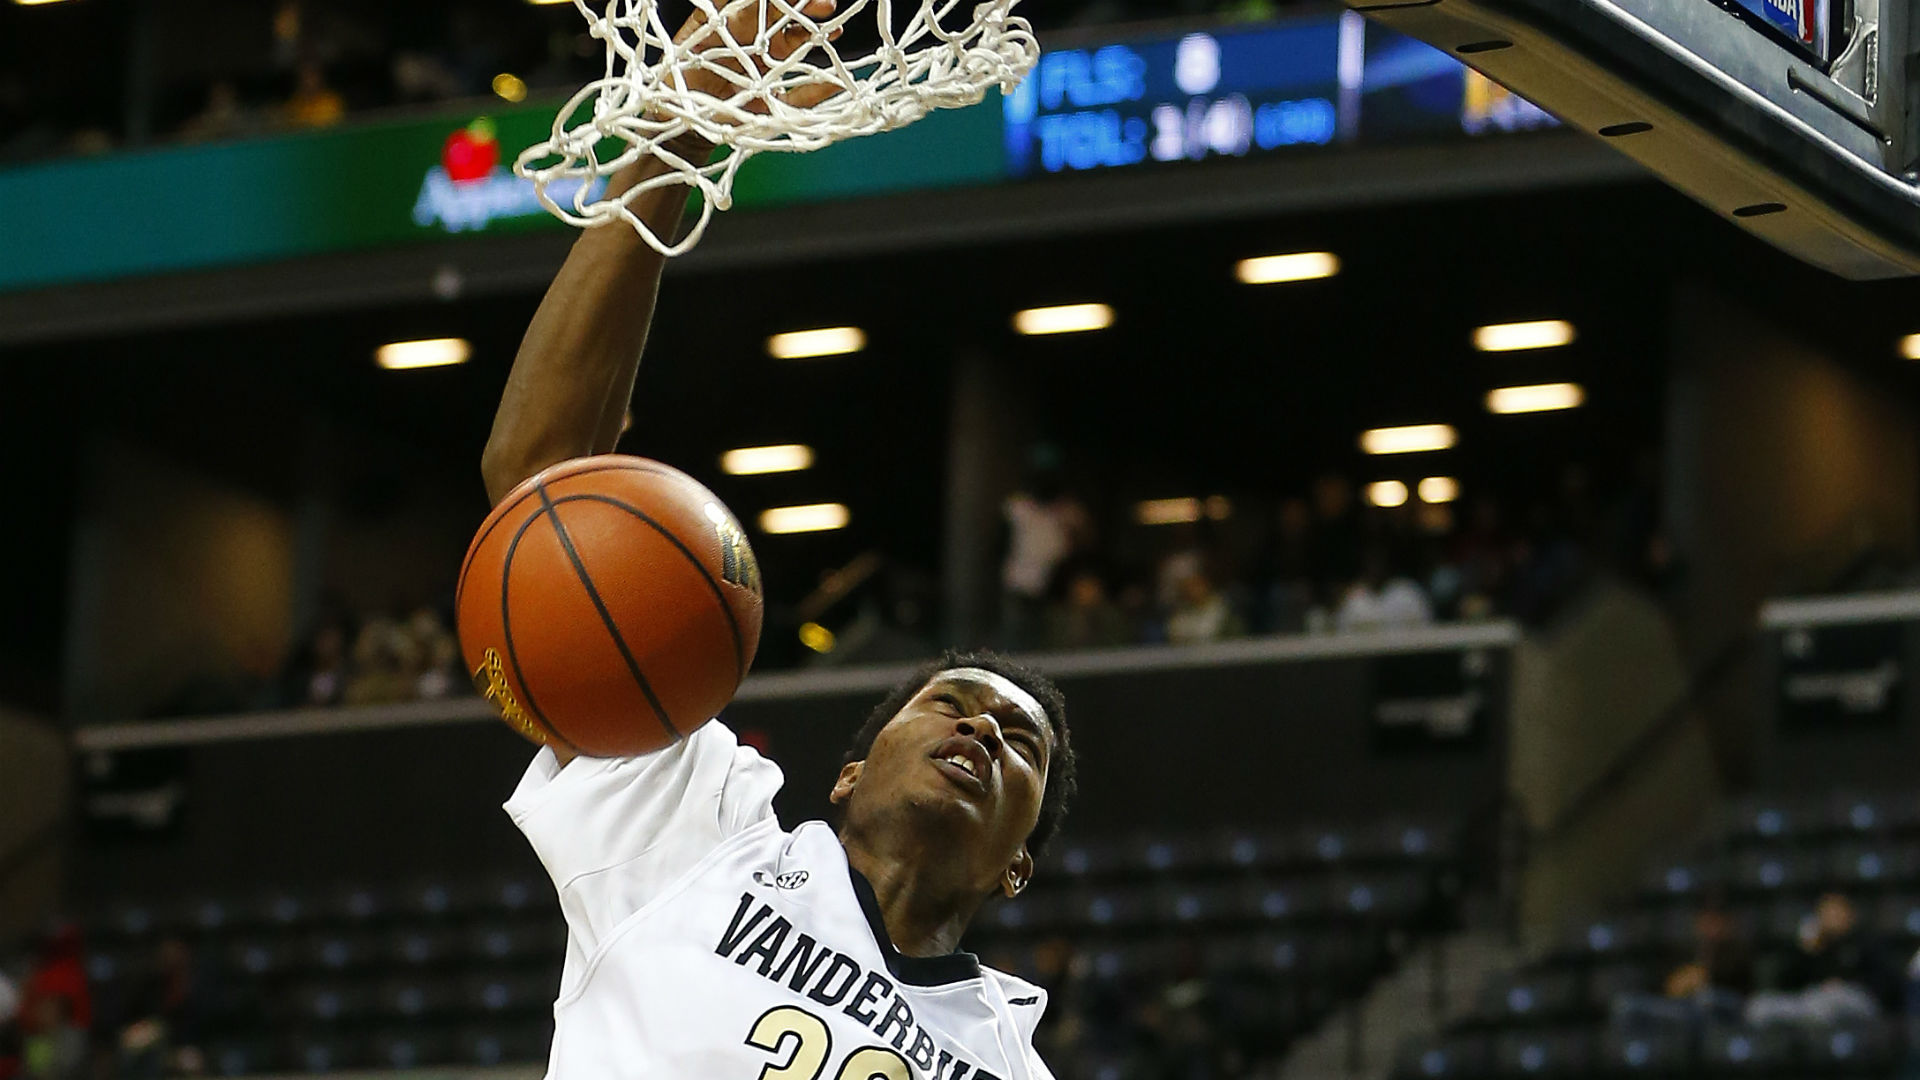 Wednesday college basketball betting lines and picks - Vandy, Kansas battle for Maui